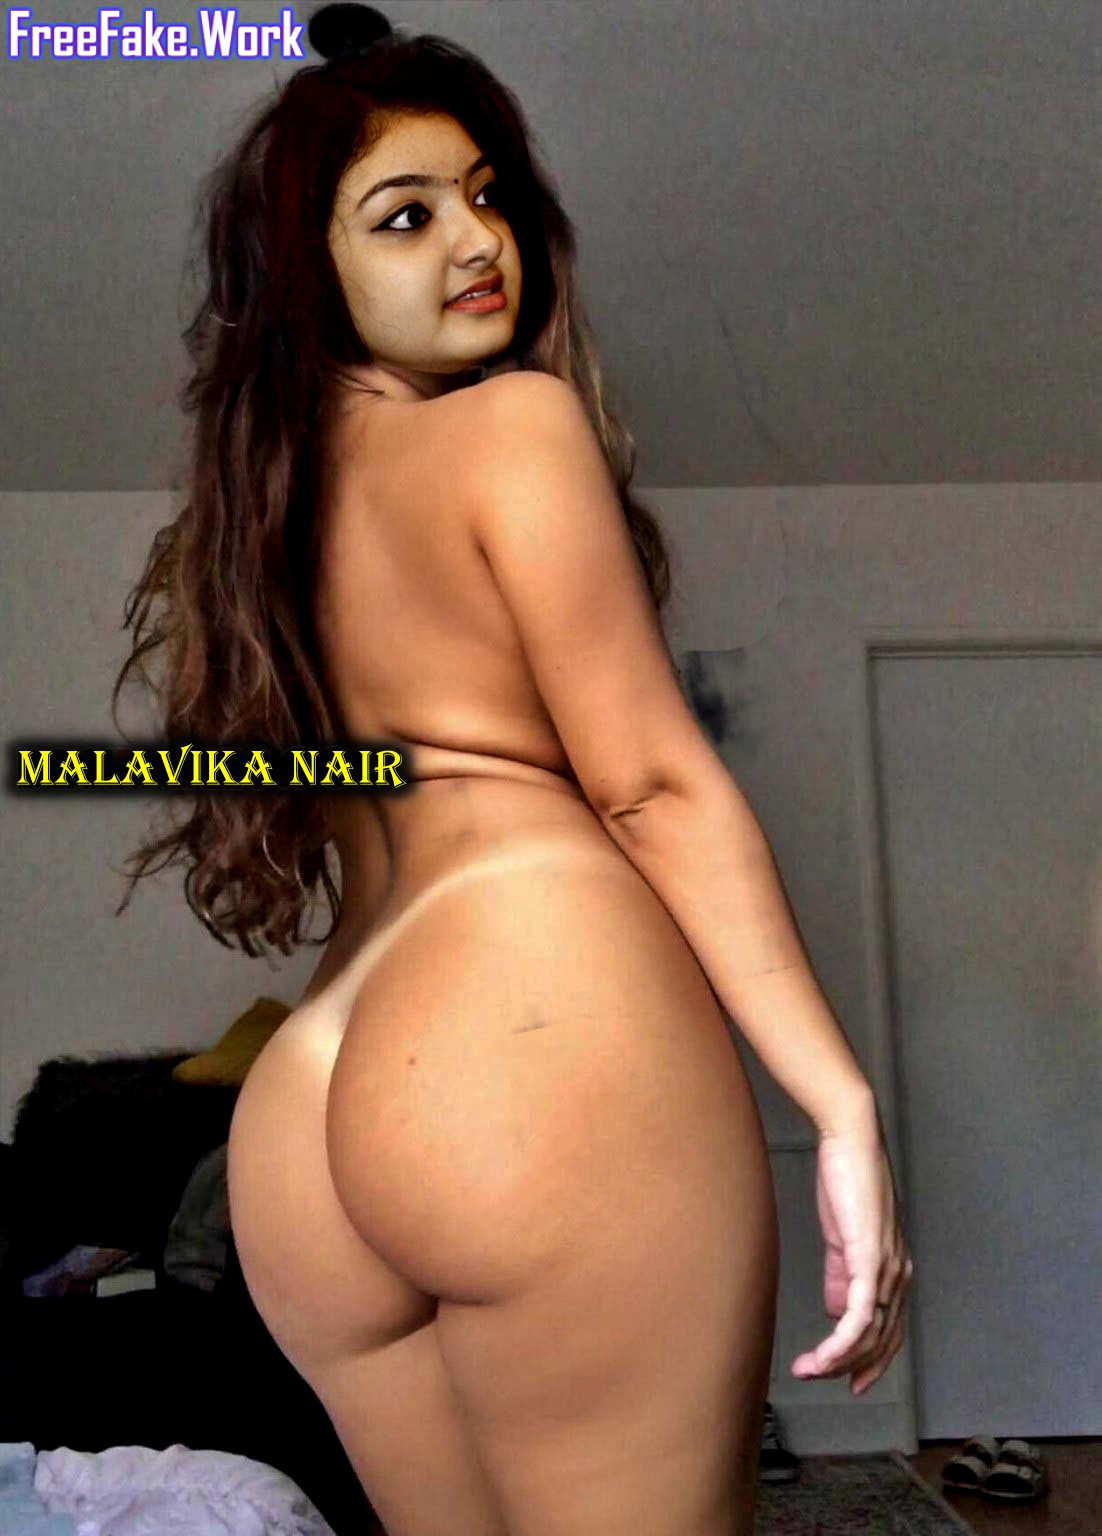 Malavika-Nair-big-round-ass-open-back-pose-naked.jpg